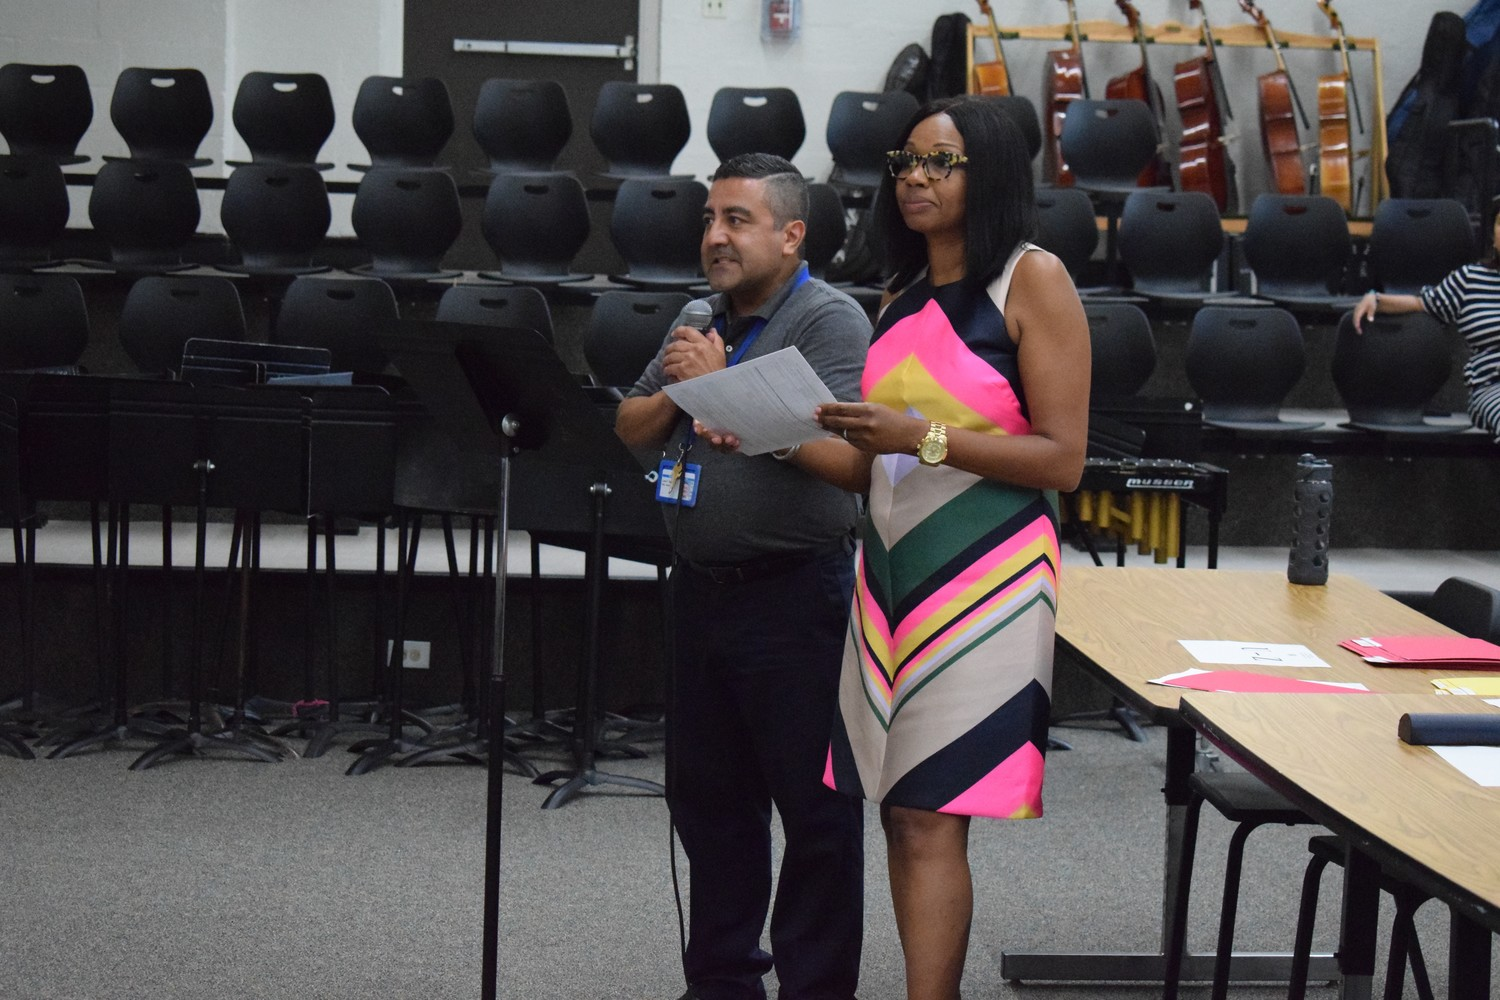 Prospect School Principal Carole Eason, right, spoke to parents about the school's move to Franklin Square with the help of Luis Diaz, one of the Hempstead School District's English as a Second Language teachers.